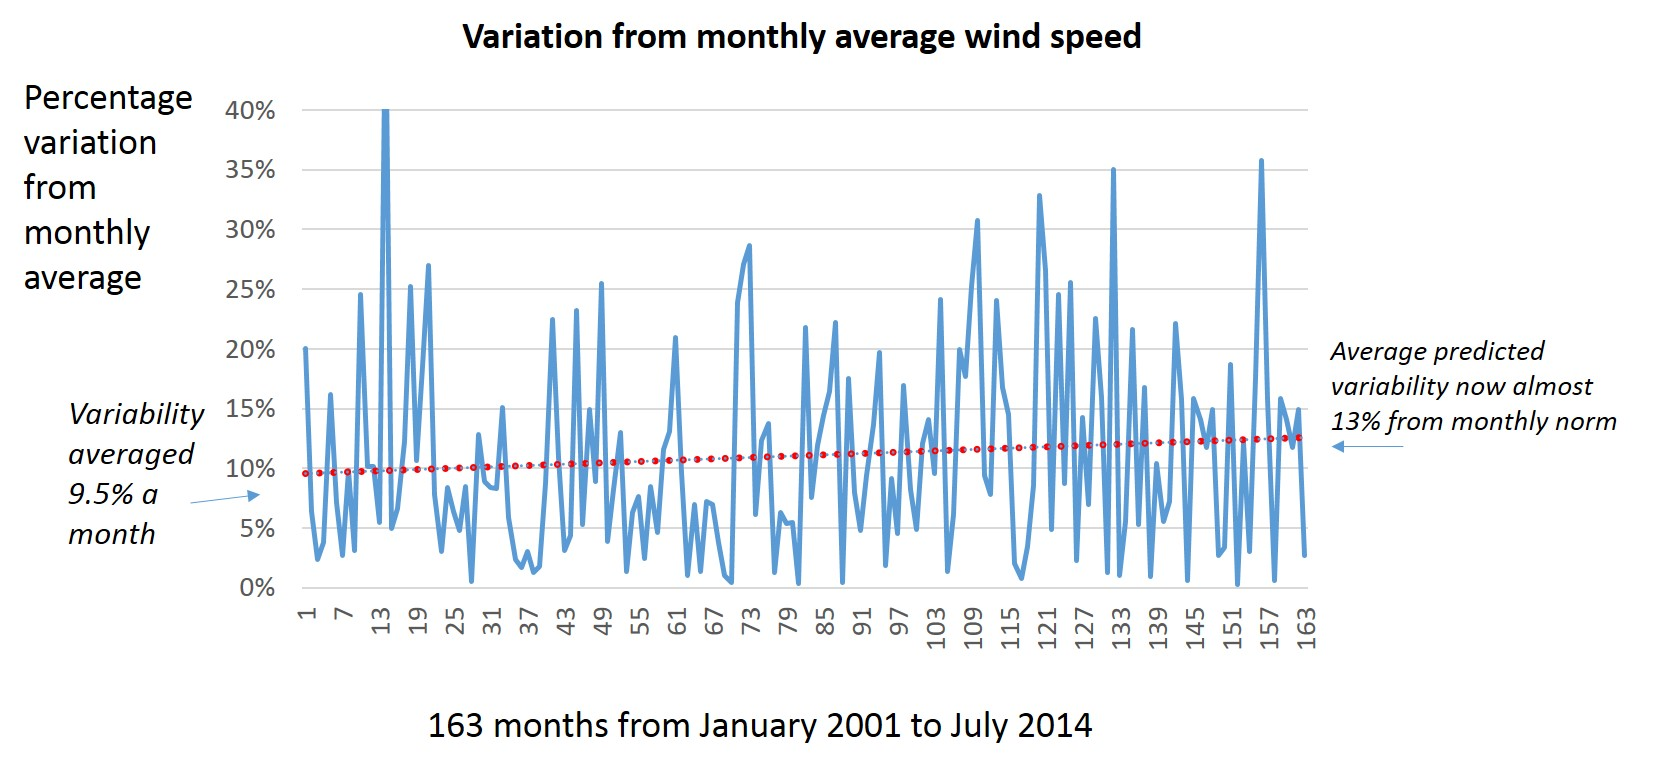 Variation from average monthly wind speed, Article 1, September 8th 2014